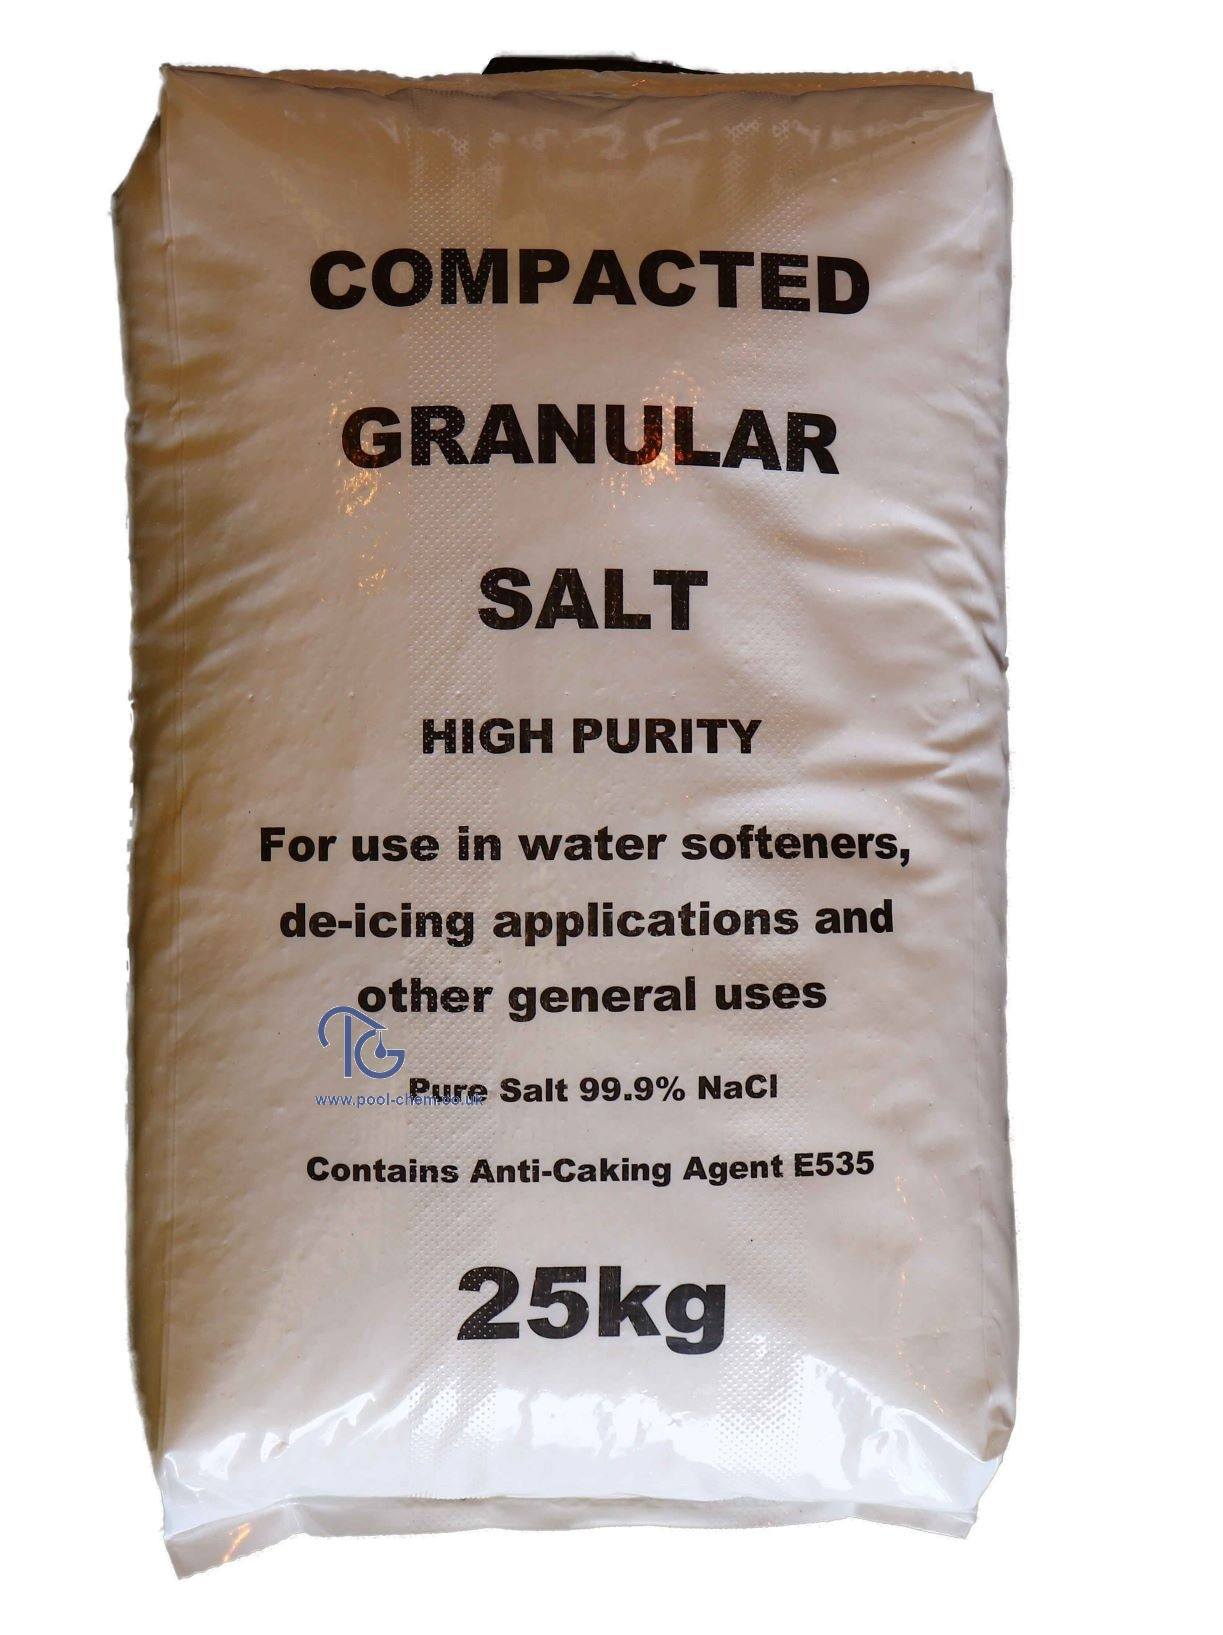 Salt (Granular) - 25 Kgs Bag - REQUEST DELIVERY QUOTATION